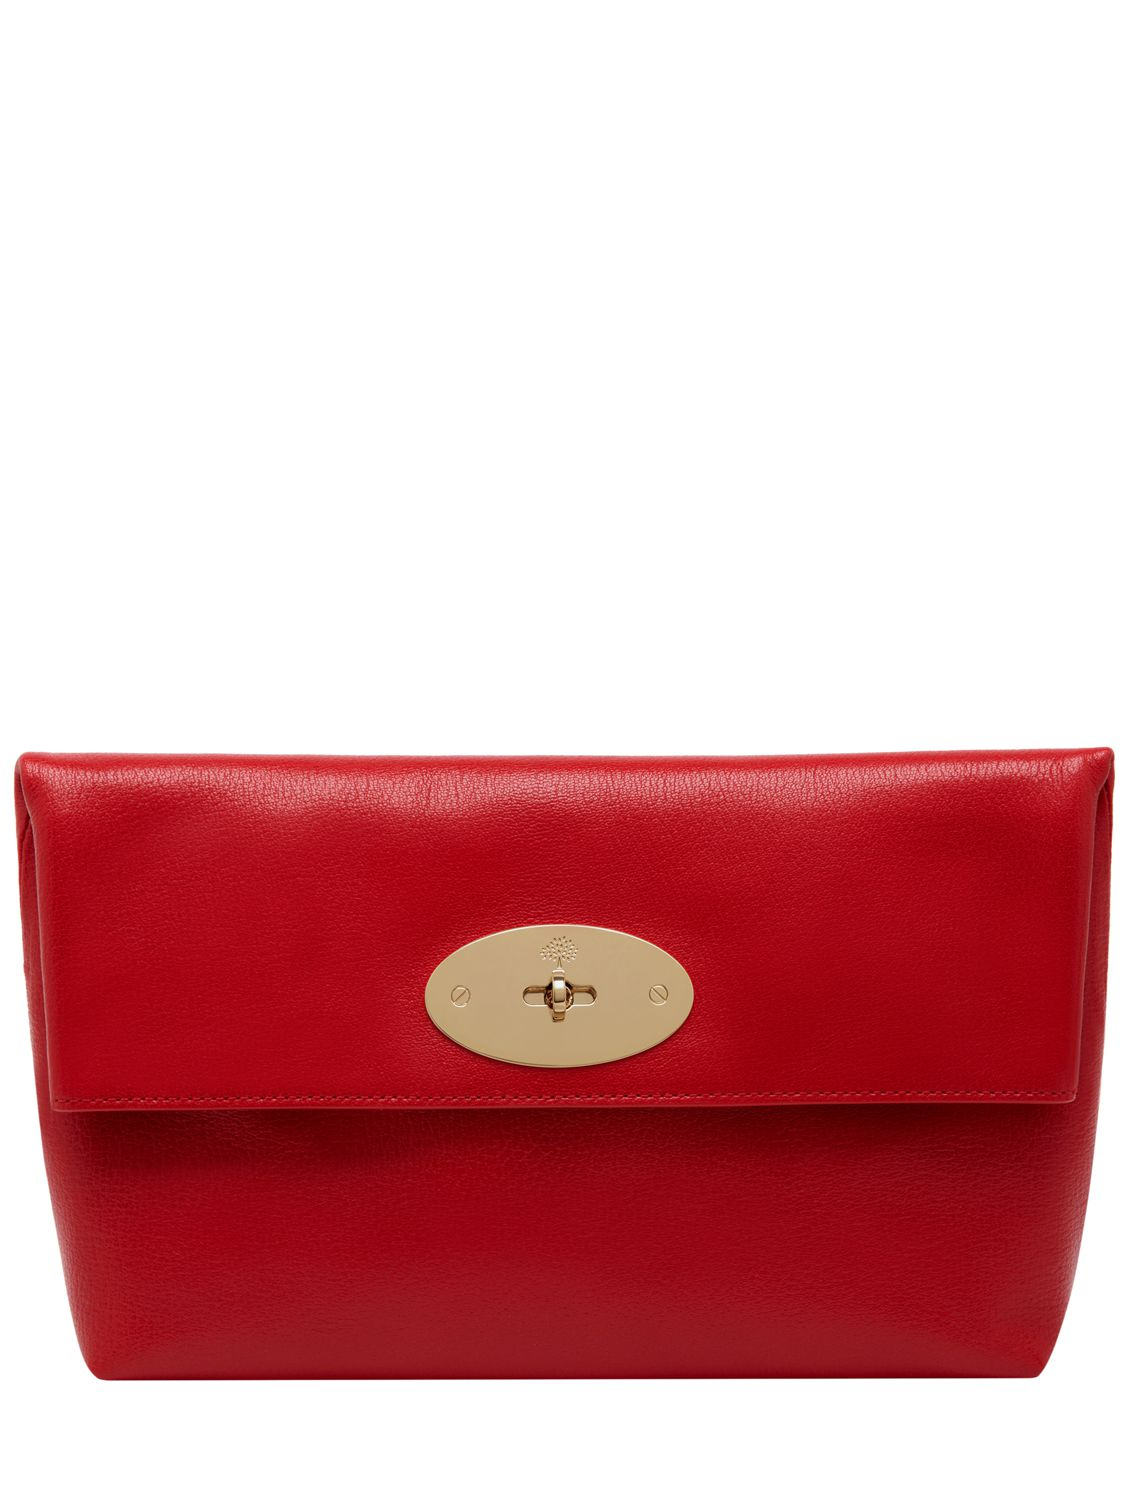 f2416d924aad Lyst - Mulberry Oversized Clemmie Shiny Leather Clutch in Red